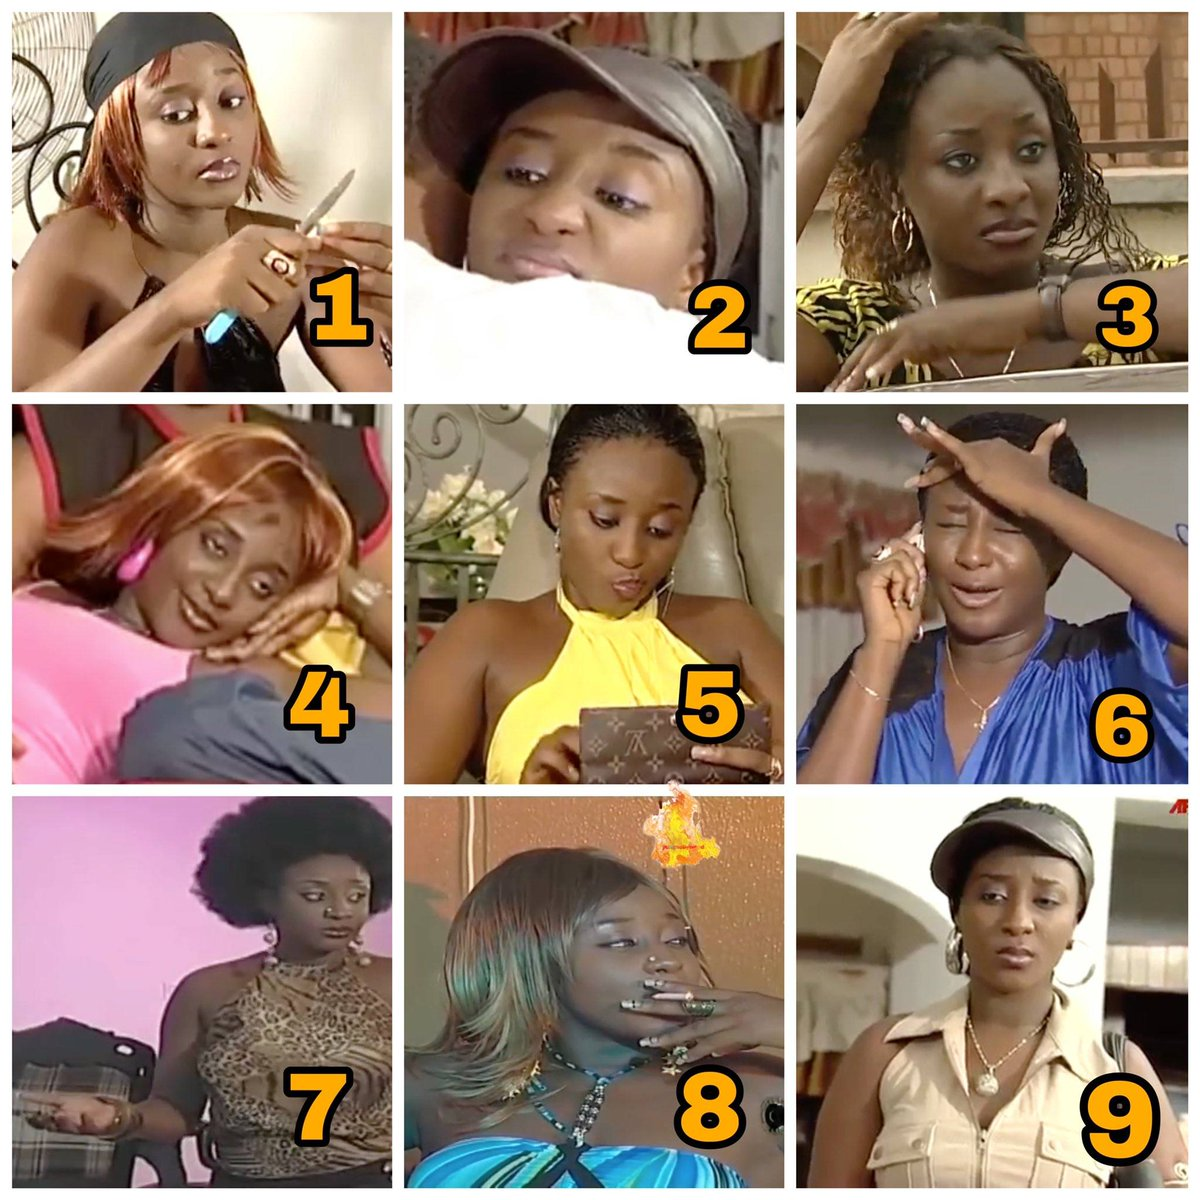 Which Ini Edo summarizes your mood so far this year? @iniedo  #cinemashed #iniedo #nollywood #nollywoodactress #nollylarious #nollywoodmovies #nigerianmovies #nigerianfilms #naijafilmcritic #moviecritic #moviereviewpic.twitter.com/DsXWatTaWk